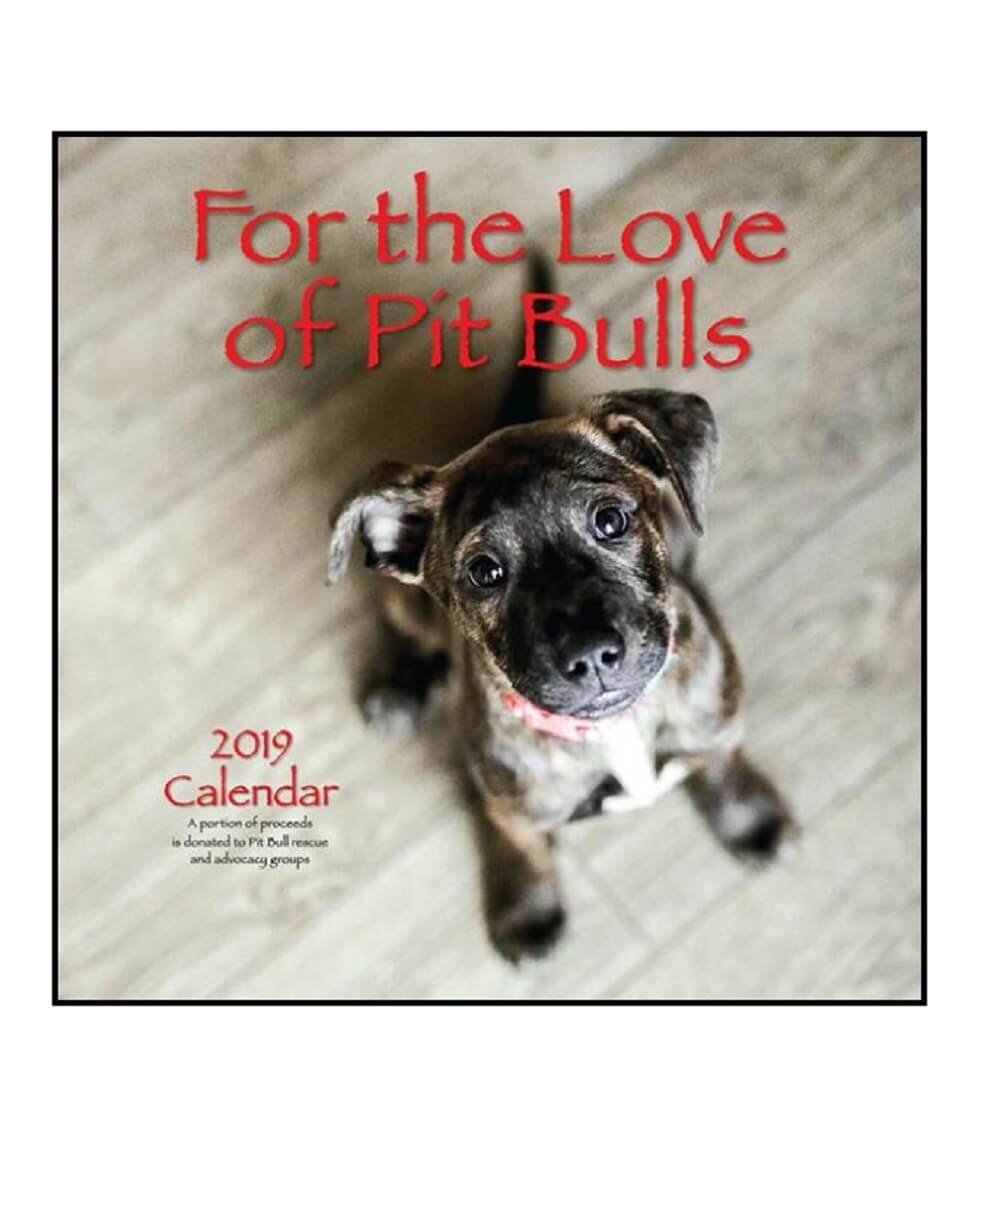 2019 For the Love of Pit Bulls Calendar